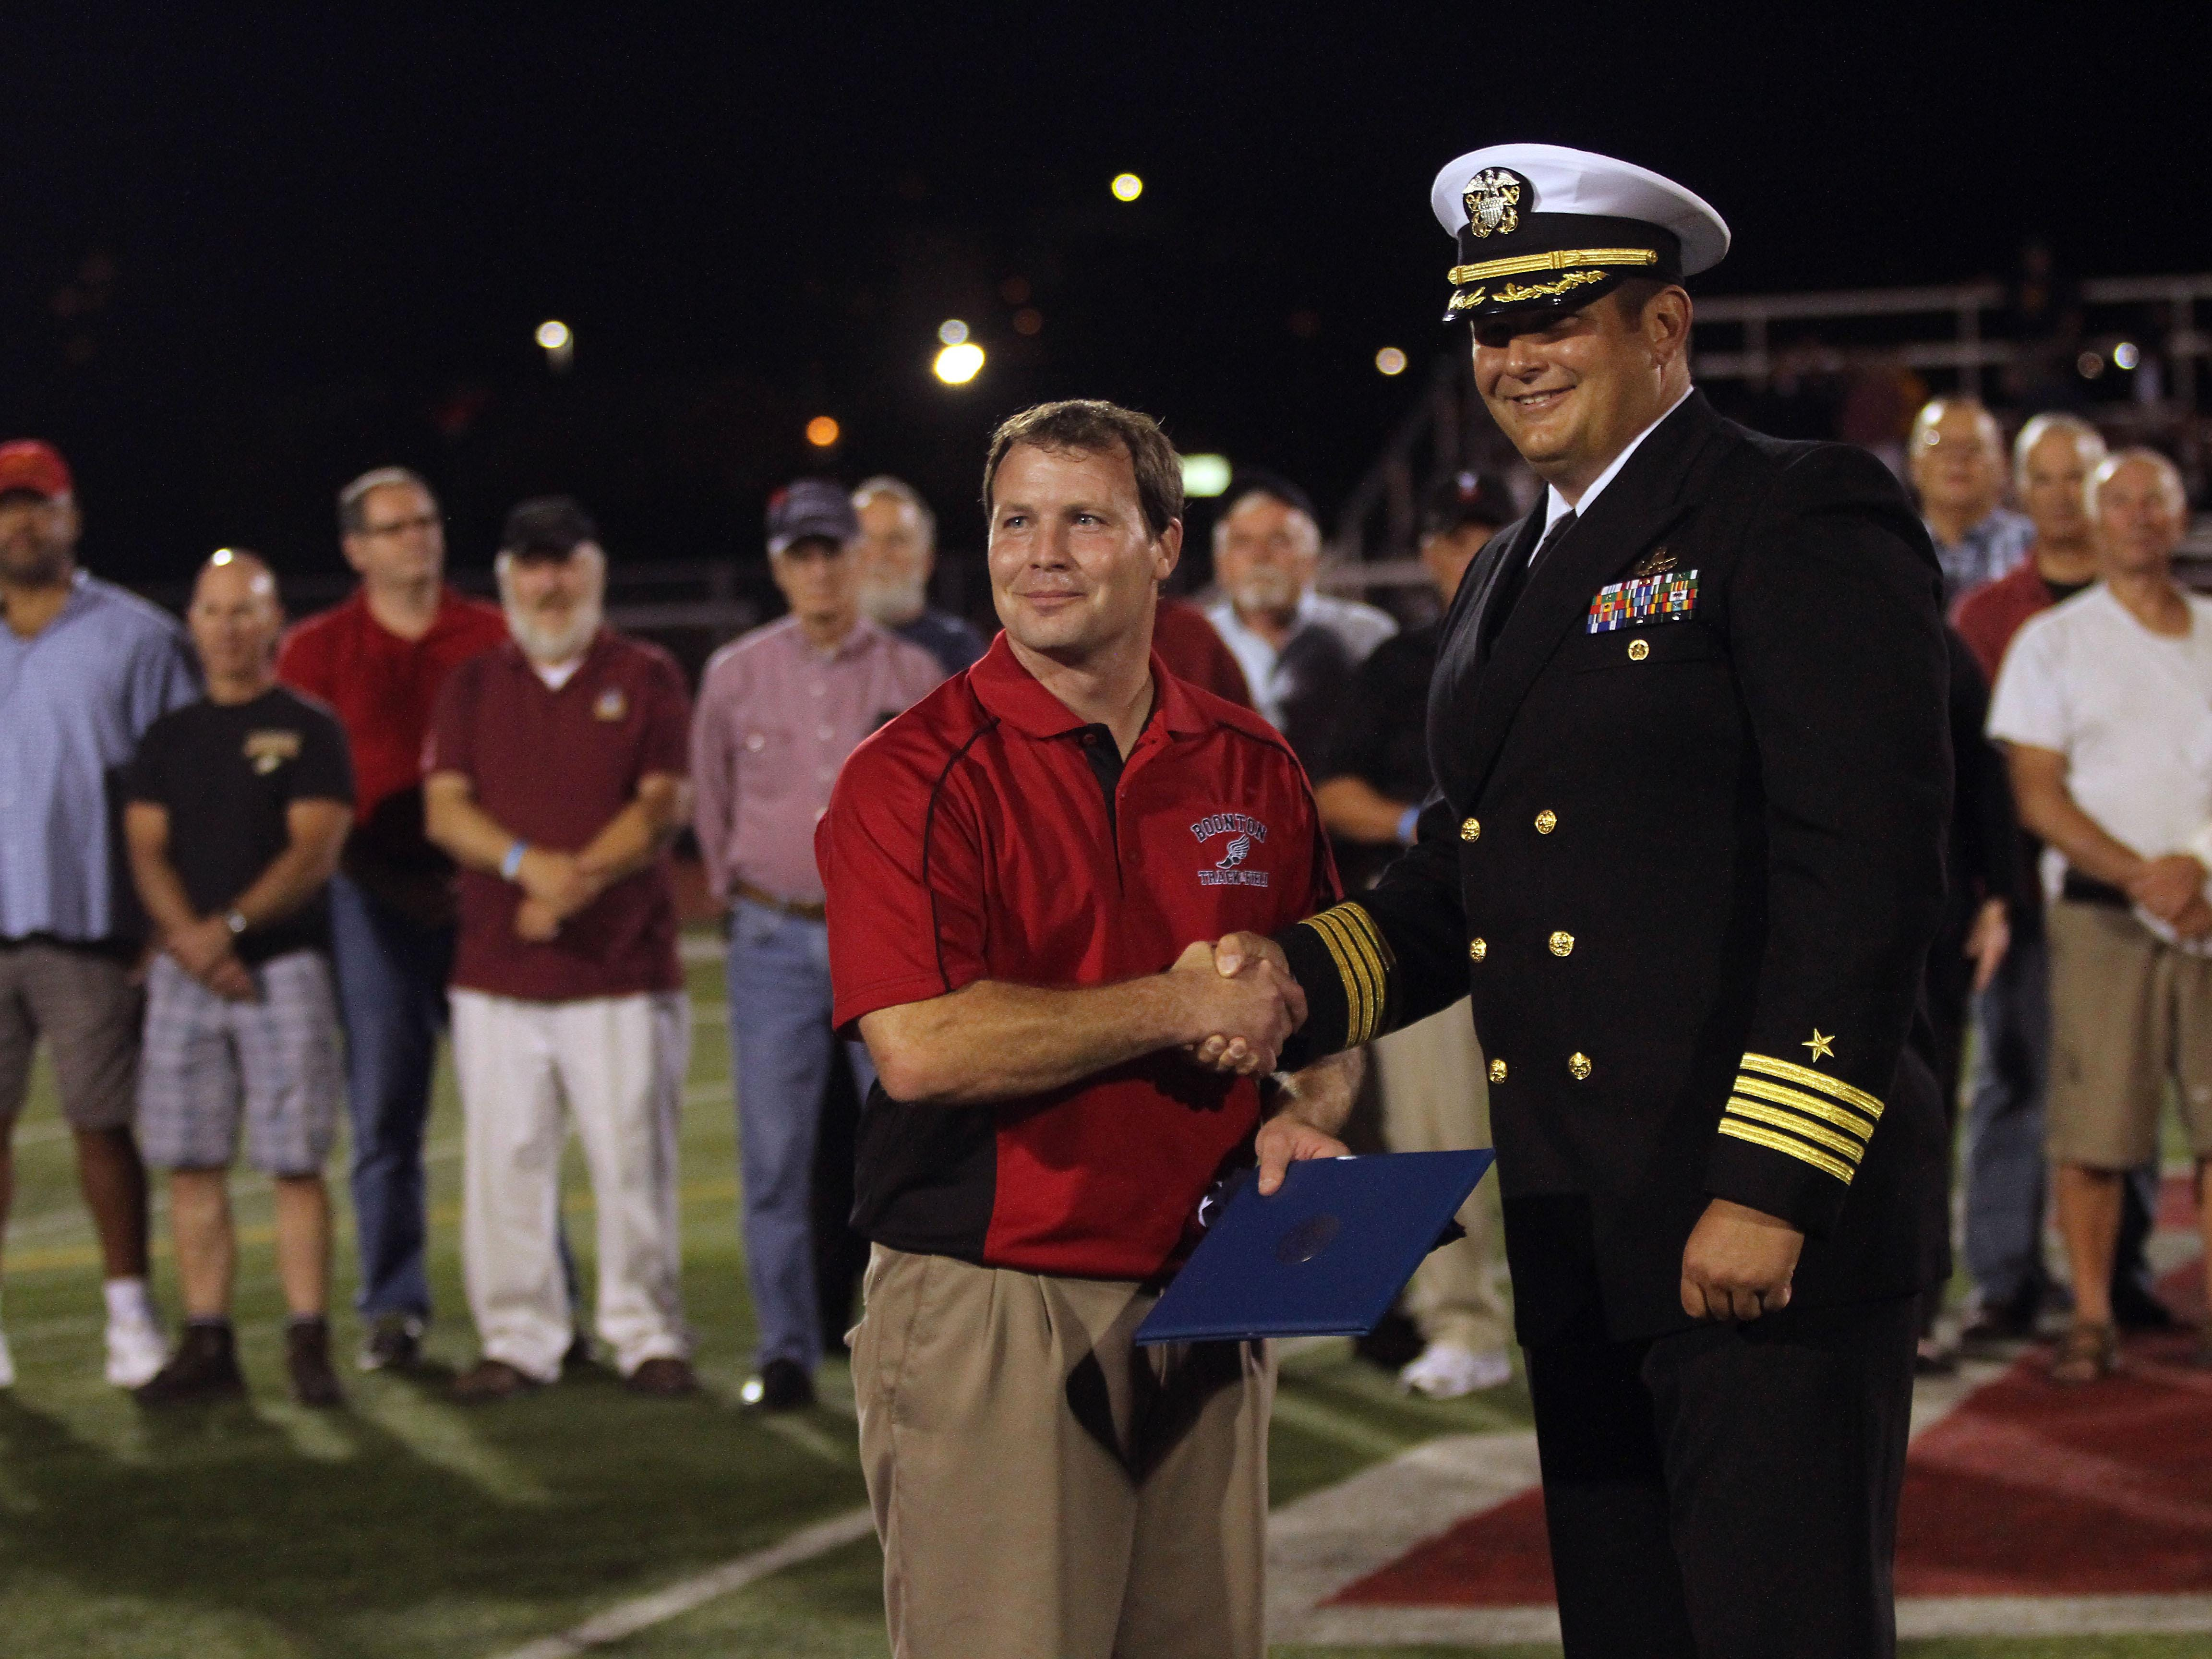 Boonton Athletic Director Dave Hughen, l, is presented an American flag flown over the Pentagon by Boonton grad, Navy Capt. Dean Muriano as Boonton High School honored its graduate military veterans during halftime of the Boonton High School football game Friday night. The vets, some of whom are still residents, others coming back from out of town, also enjoyed a tailgate party prior to the game and ceremony. September 18, 2015, Boonton, NJ.